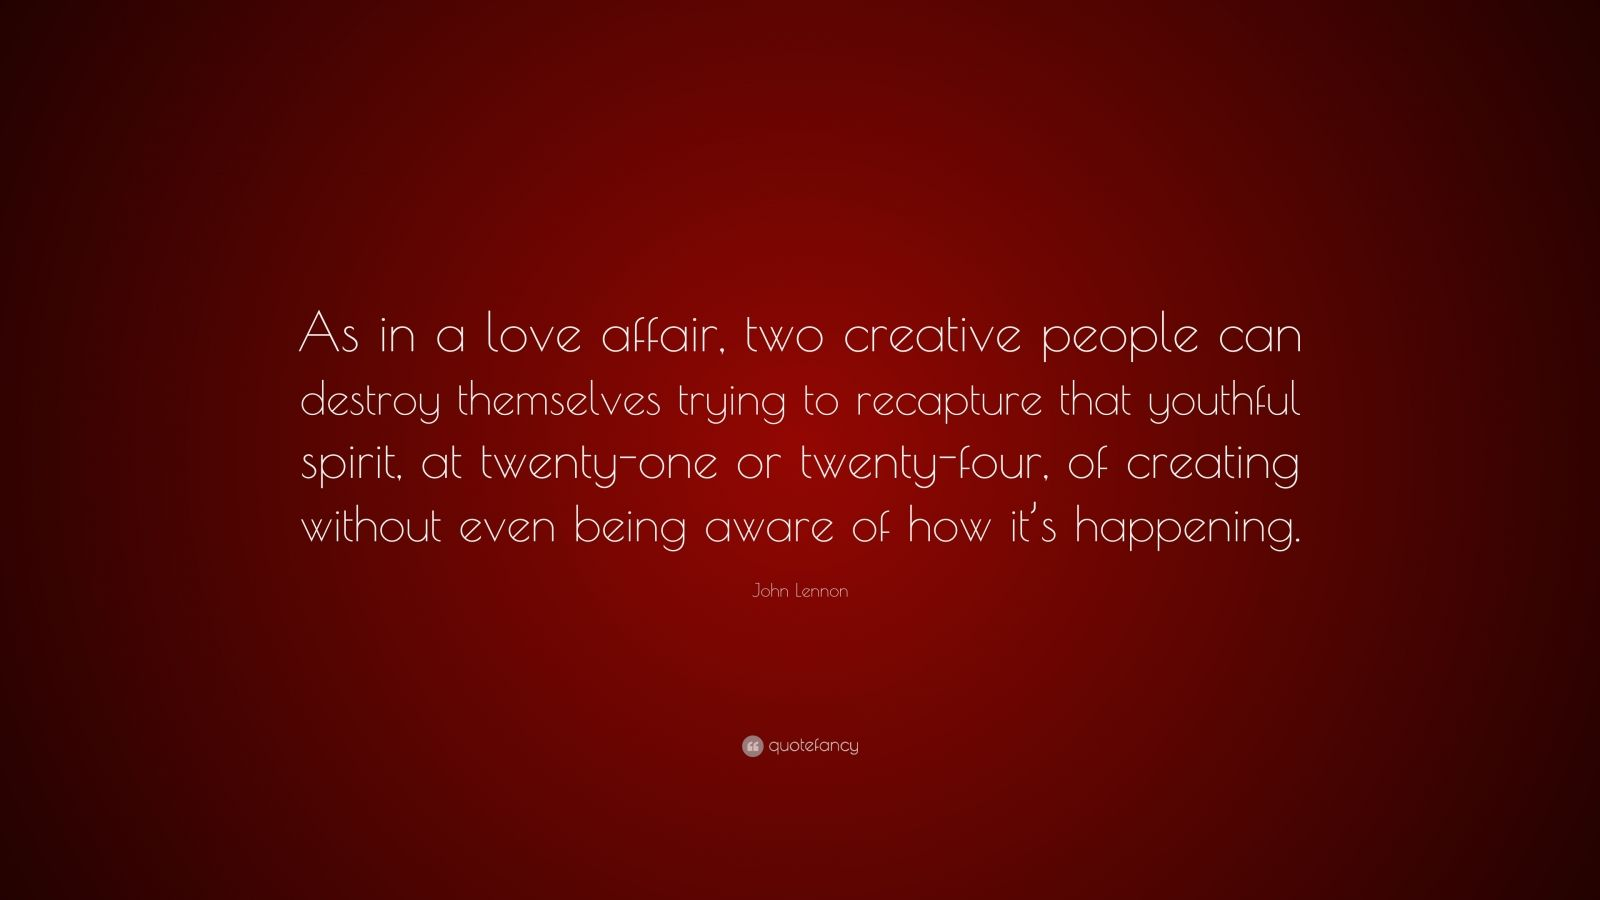 """John Lennon Quote: """"As in a love affair, two creative people can destroy themselves trying to recapture that youthful spirit, at twenty-one or twenty-four, of creating without even being aware of how it's happening."""""""